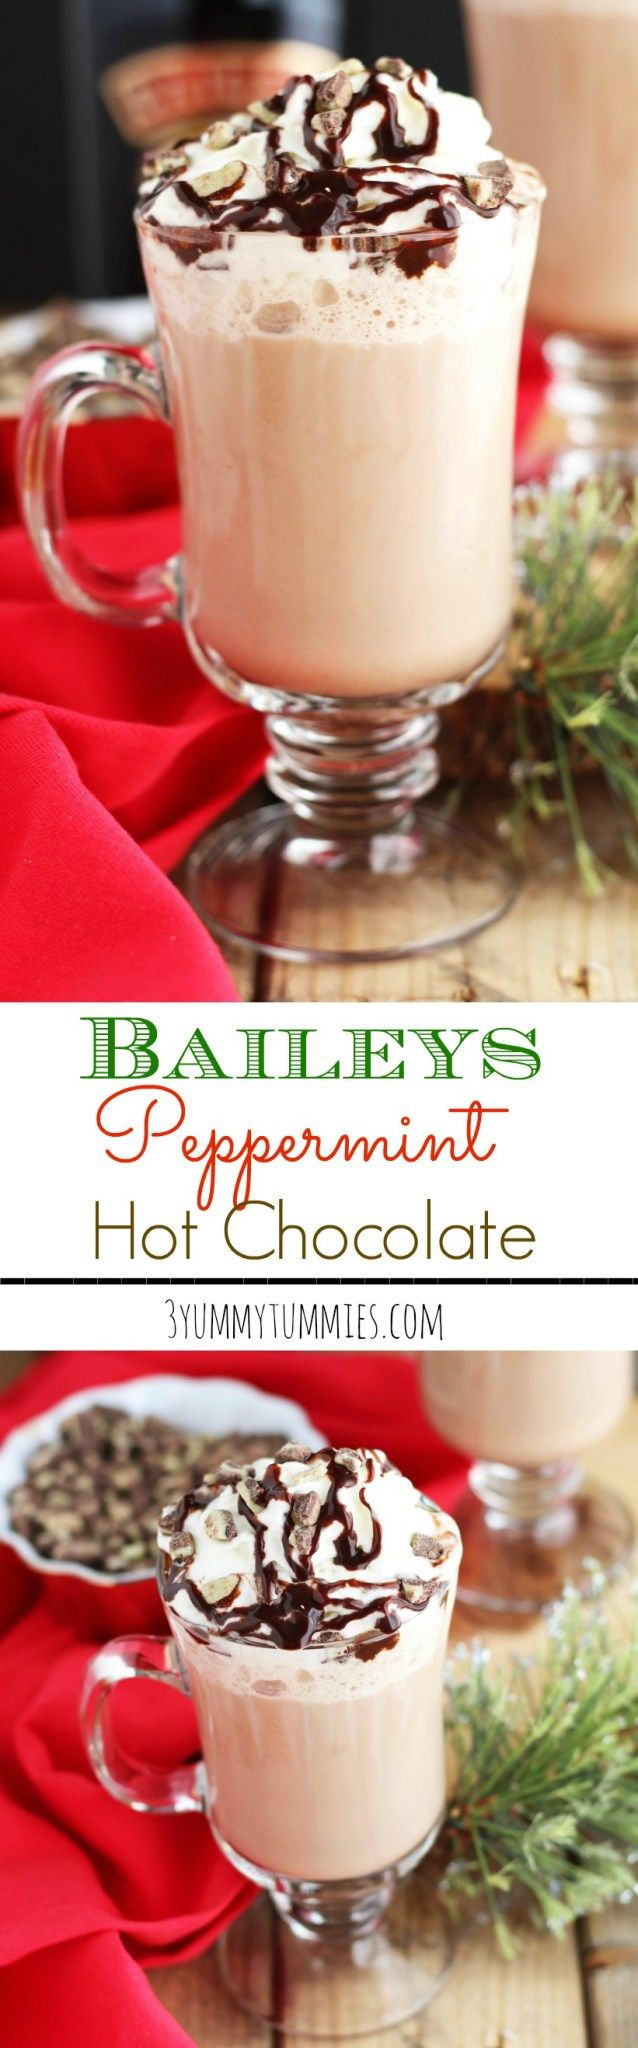 Baileys Peppermint Hot Chocolate | 3 Yummy Tummies